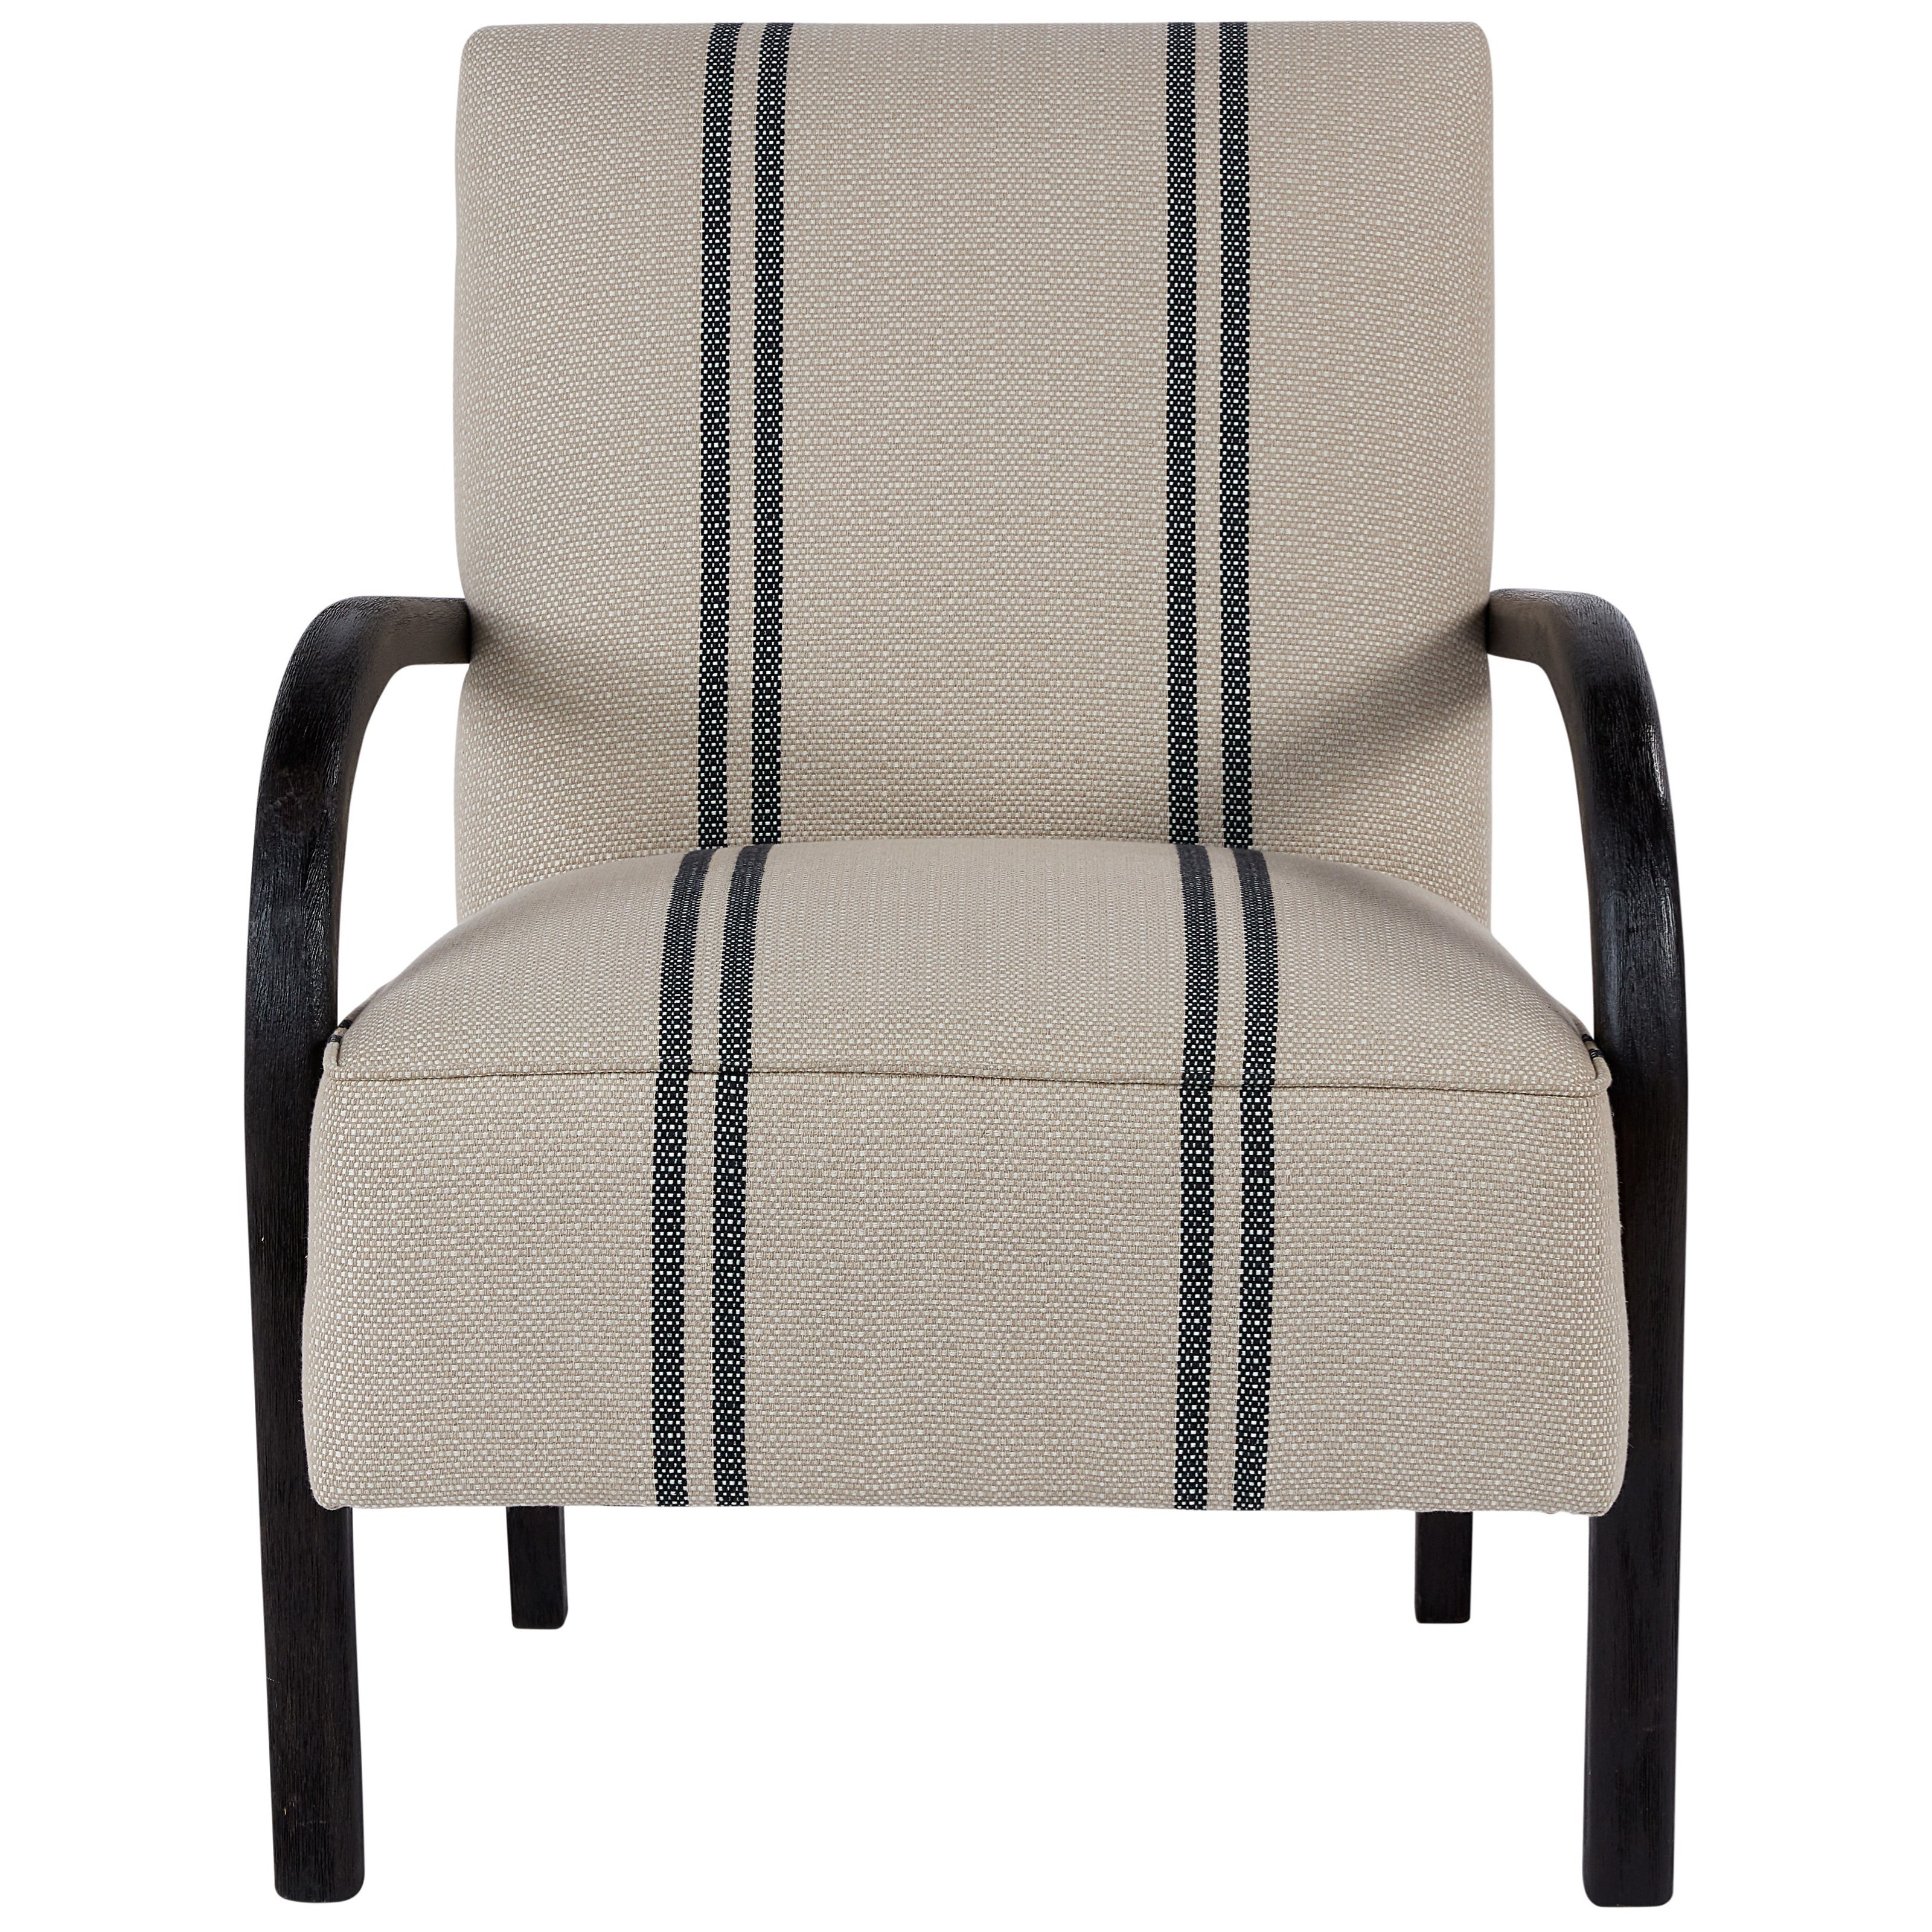 Coastal Living Home - Getaway Accent Chair by Universal at Baer's Furniture